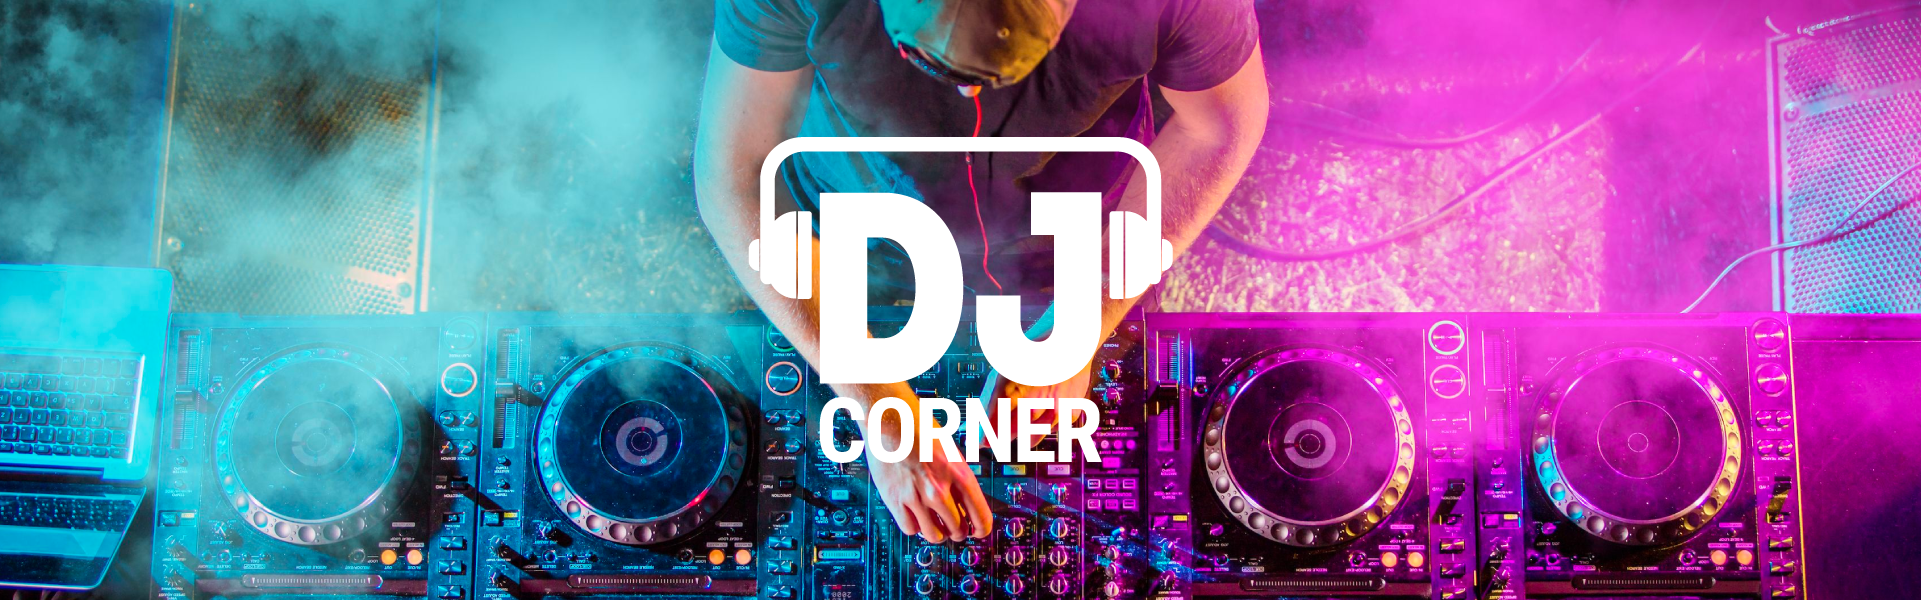 dj corner roman value centre